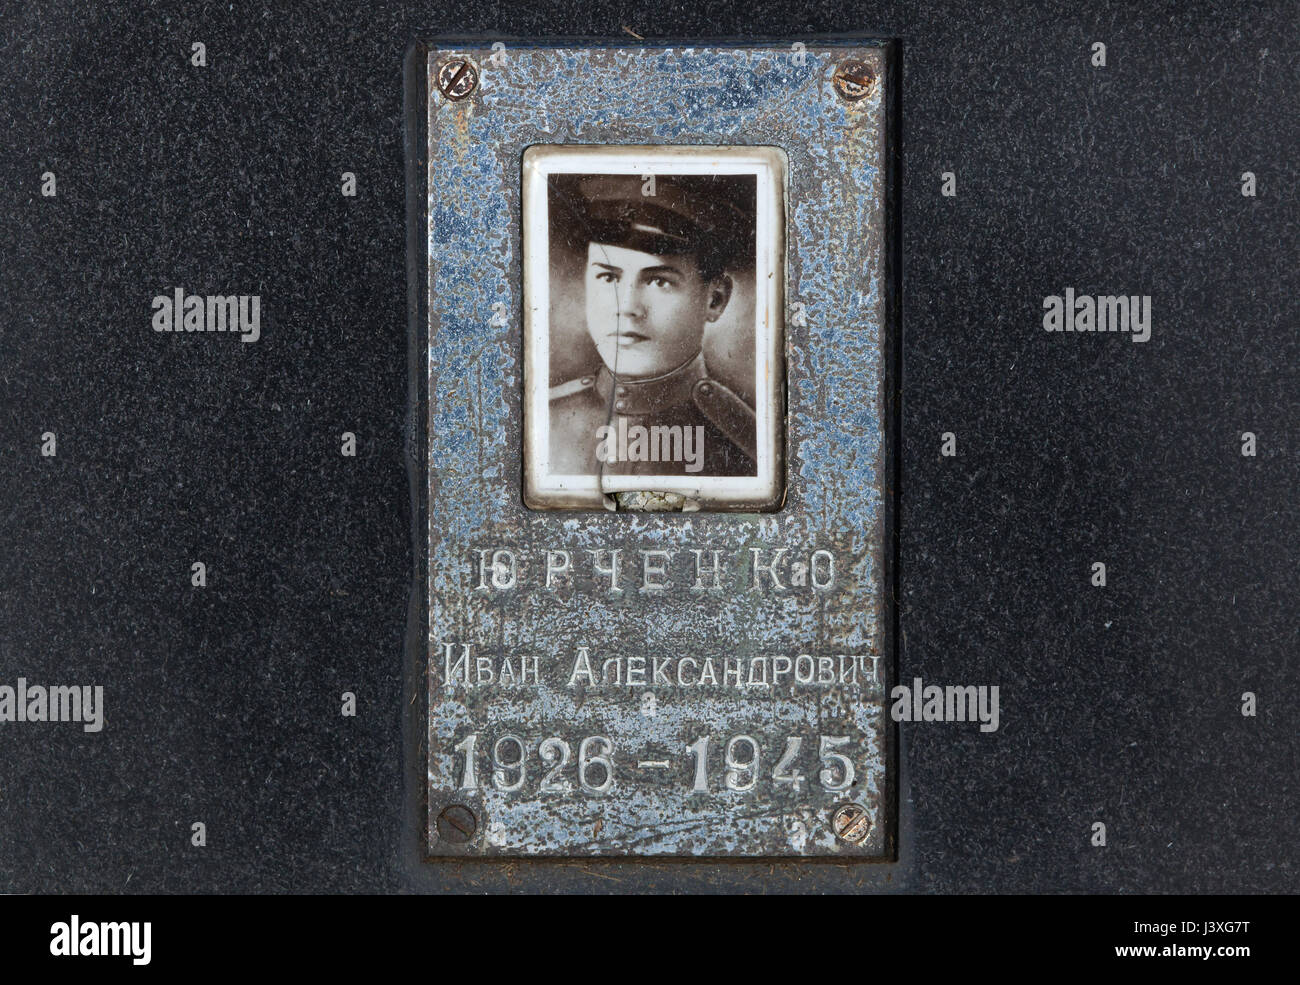 Photograph of Soviet military officer Ivan Yurchenko on the ground of the Soviet War Memorial at the Central Cemetery - Stock Image